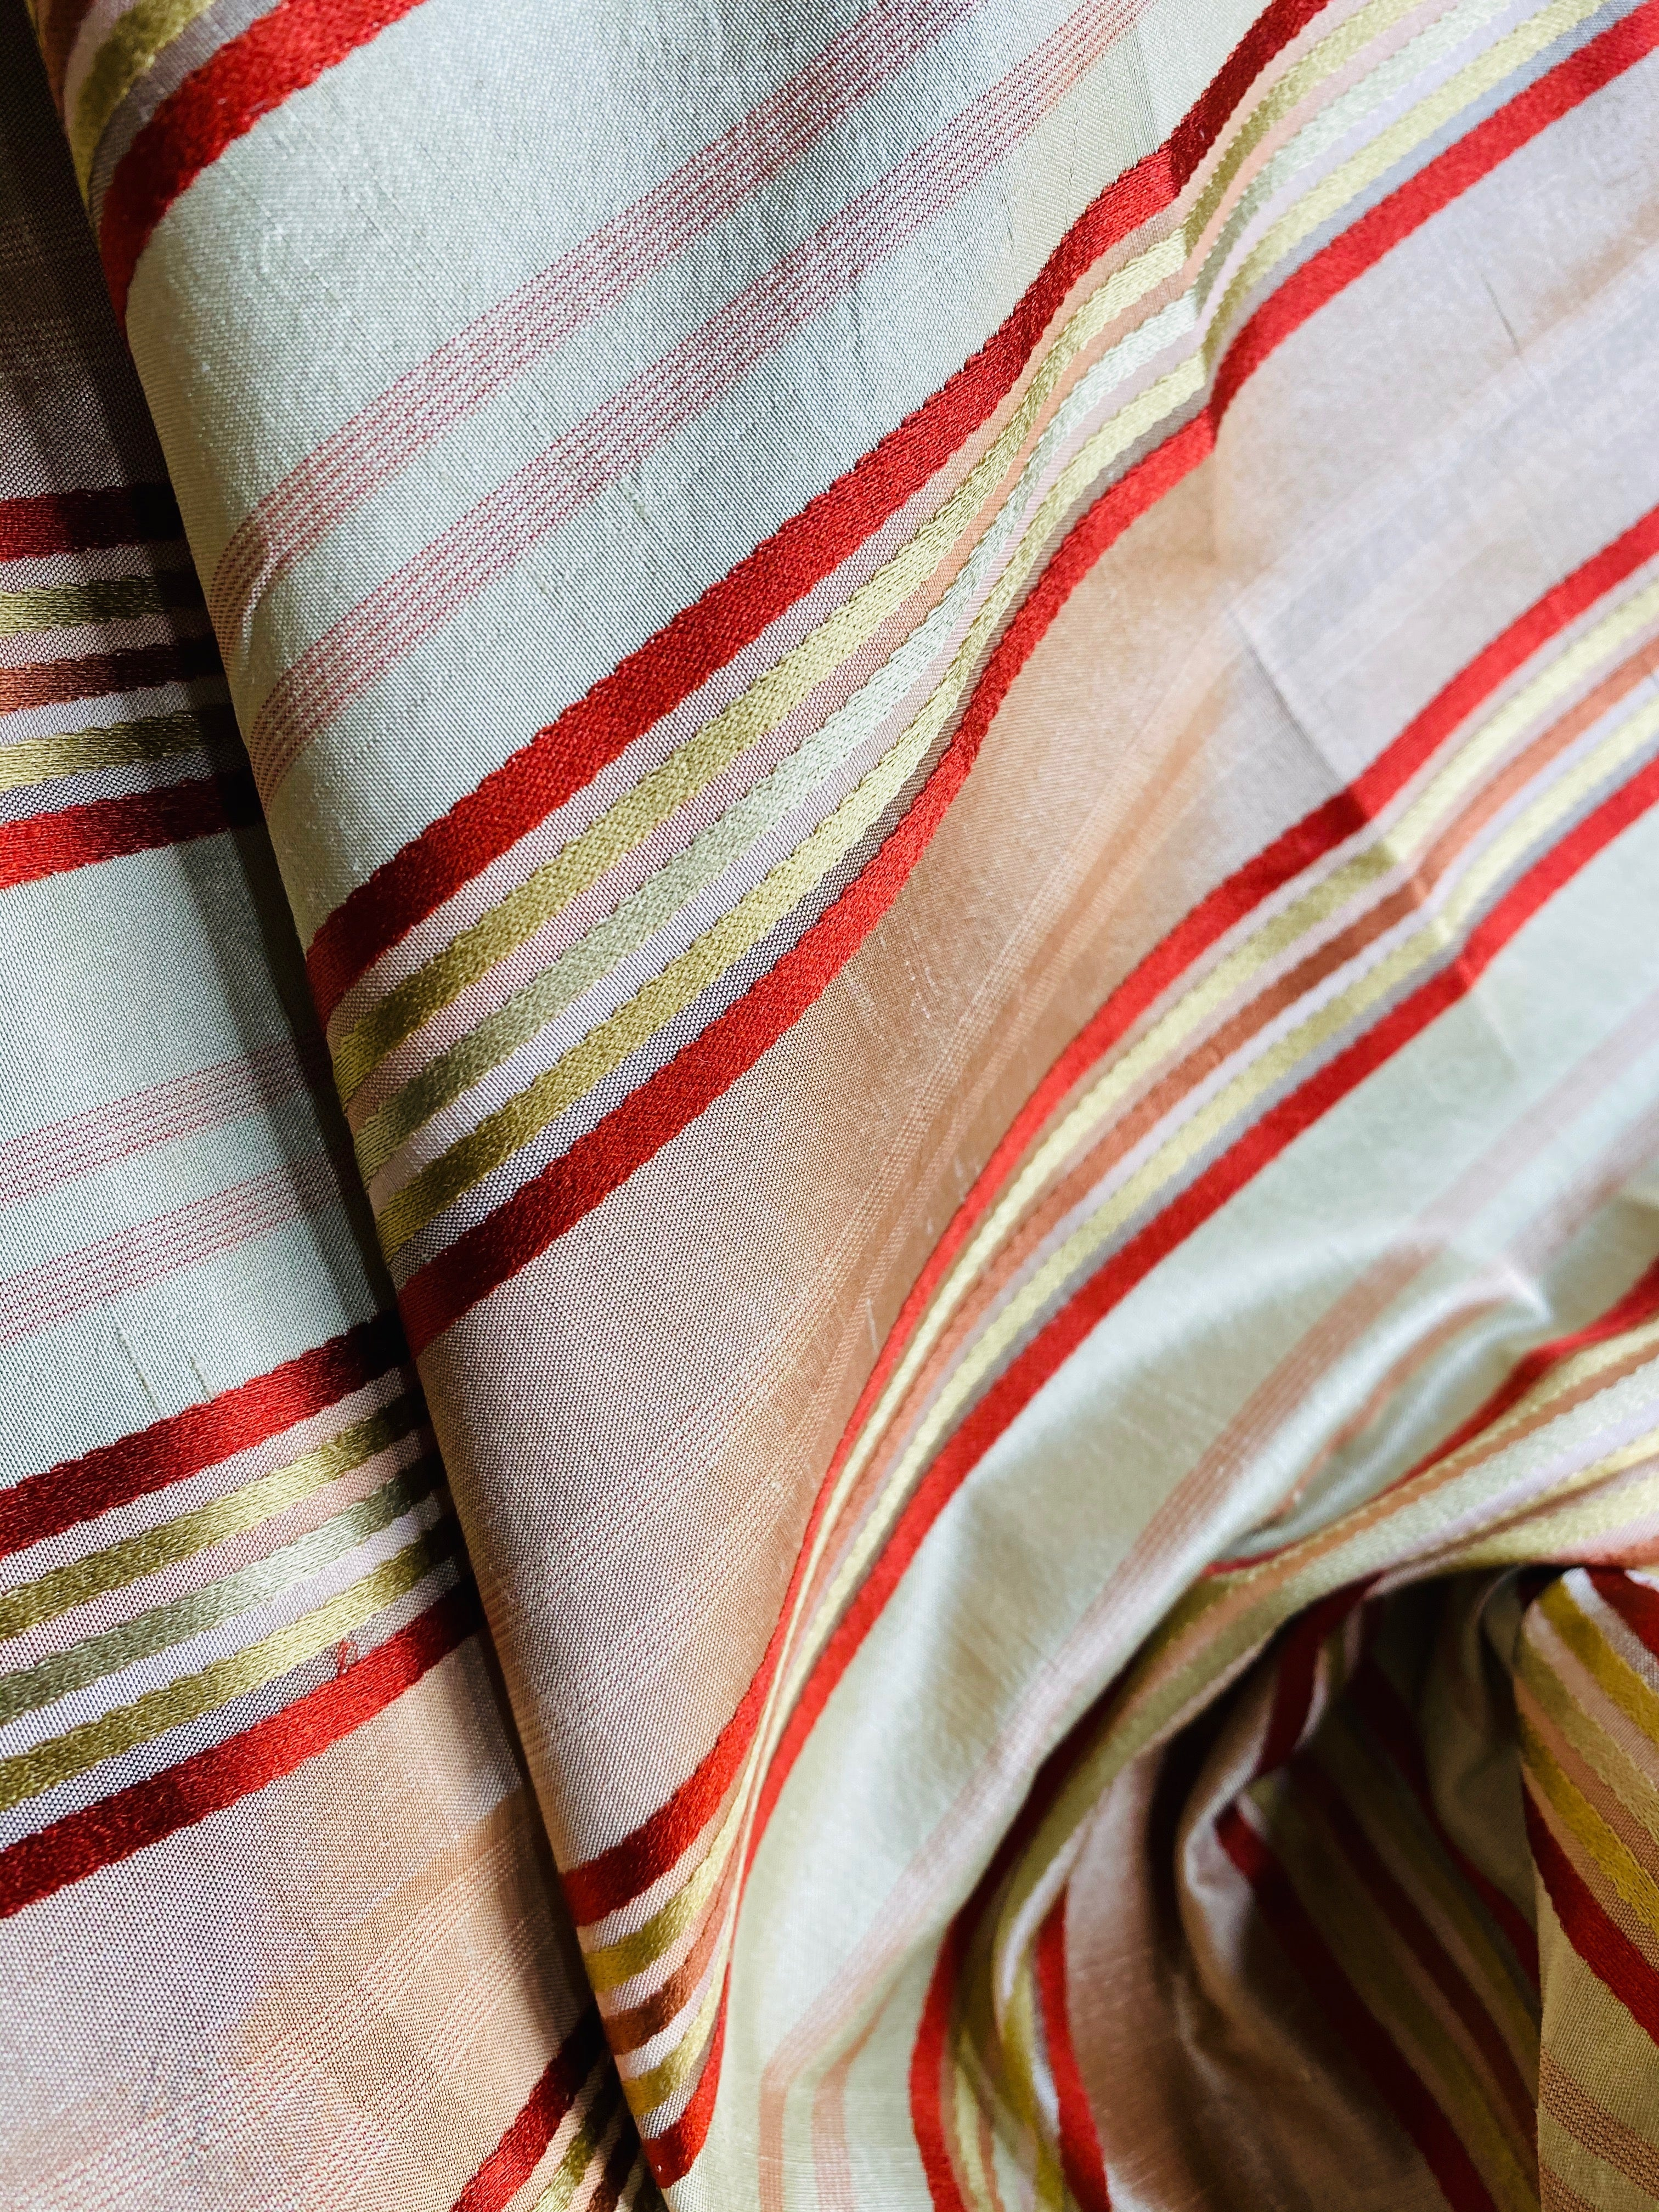 NEW Designer 100% Silk Dupioni Fabric with Red, Pink, Gold, & Copper Ribbon Stripes